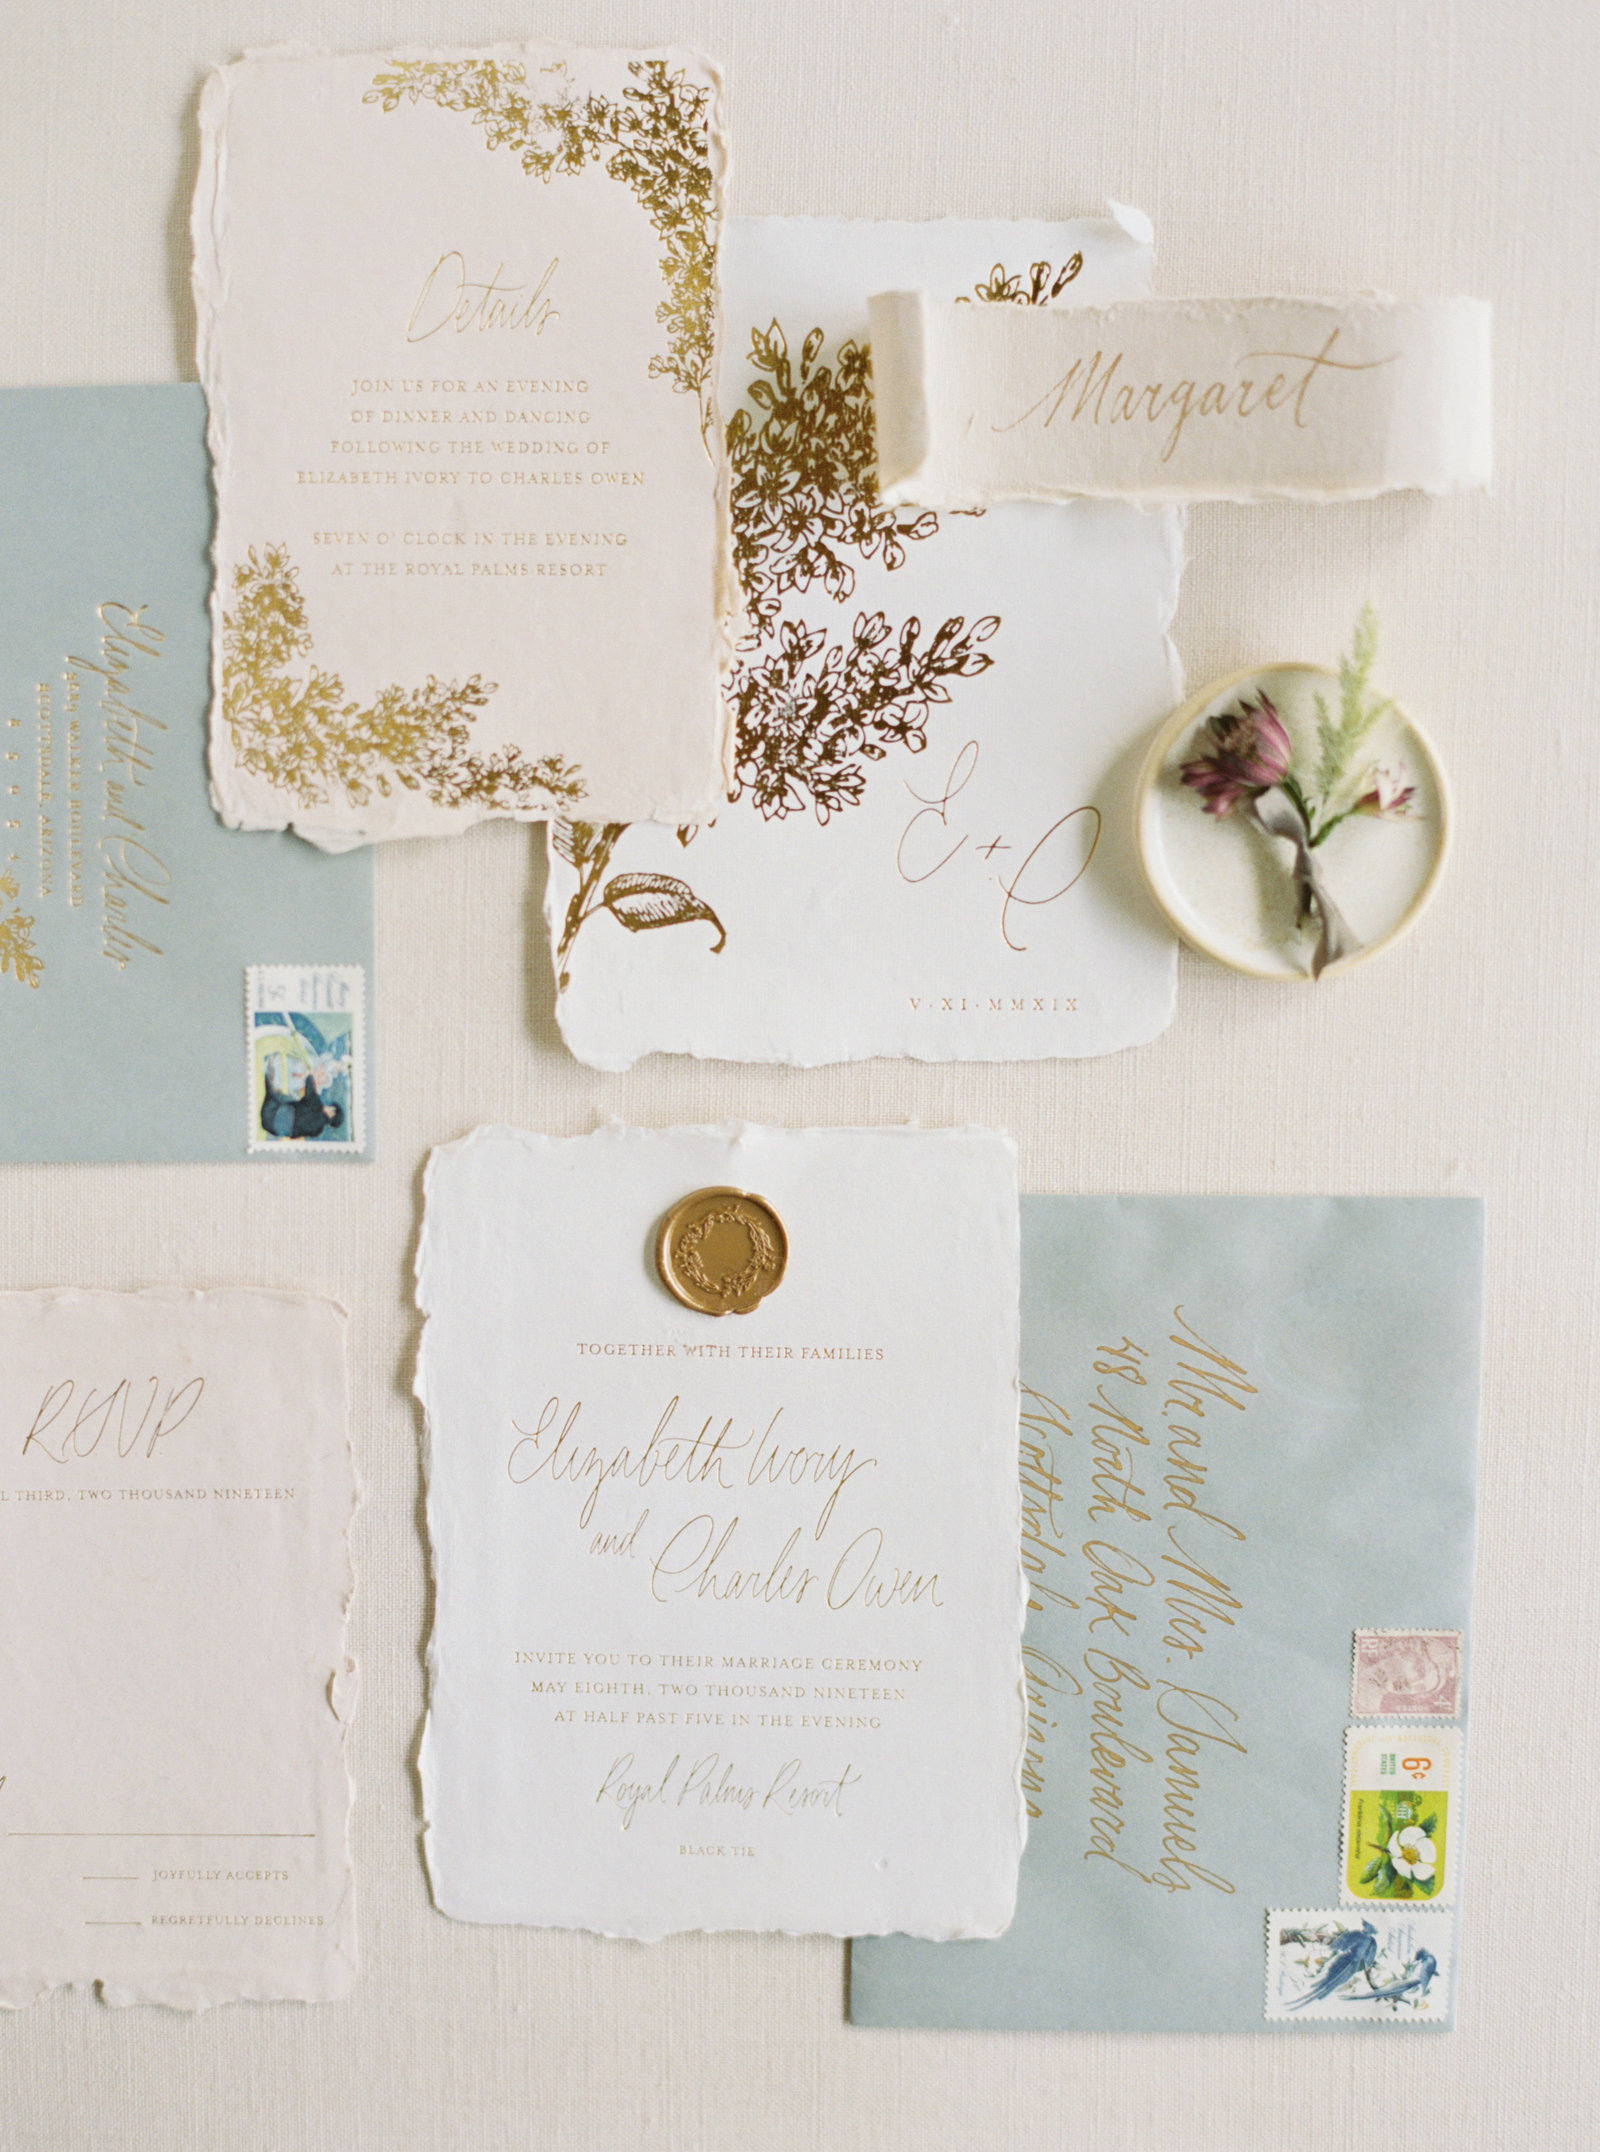 Fine art wedding invitation with calligraphy, handmade paper, and vintage stamps